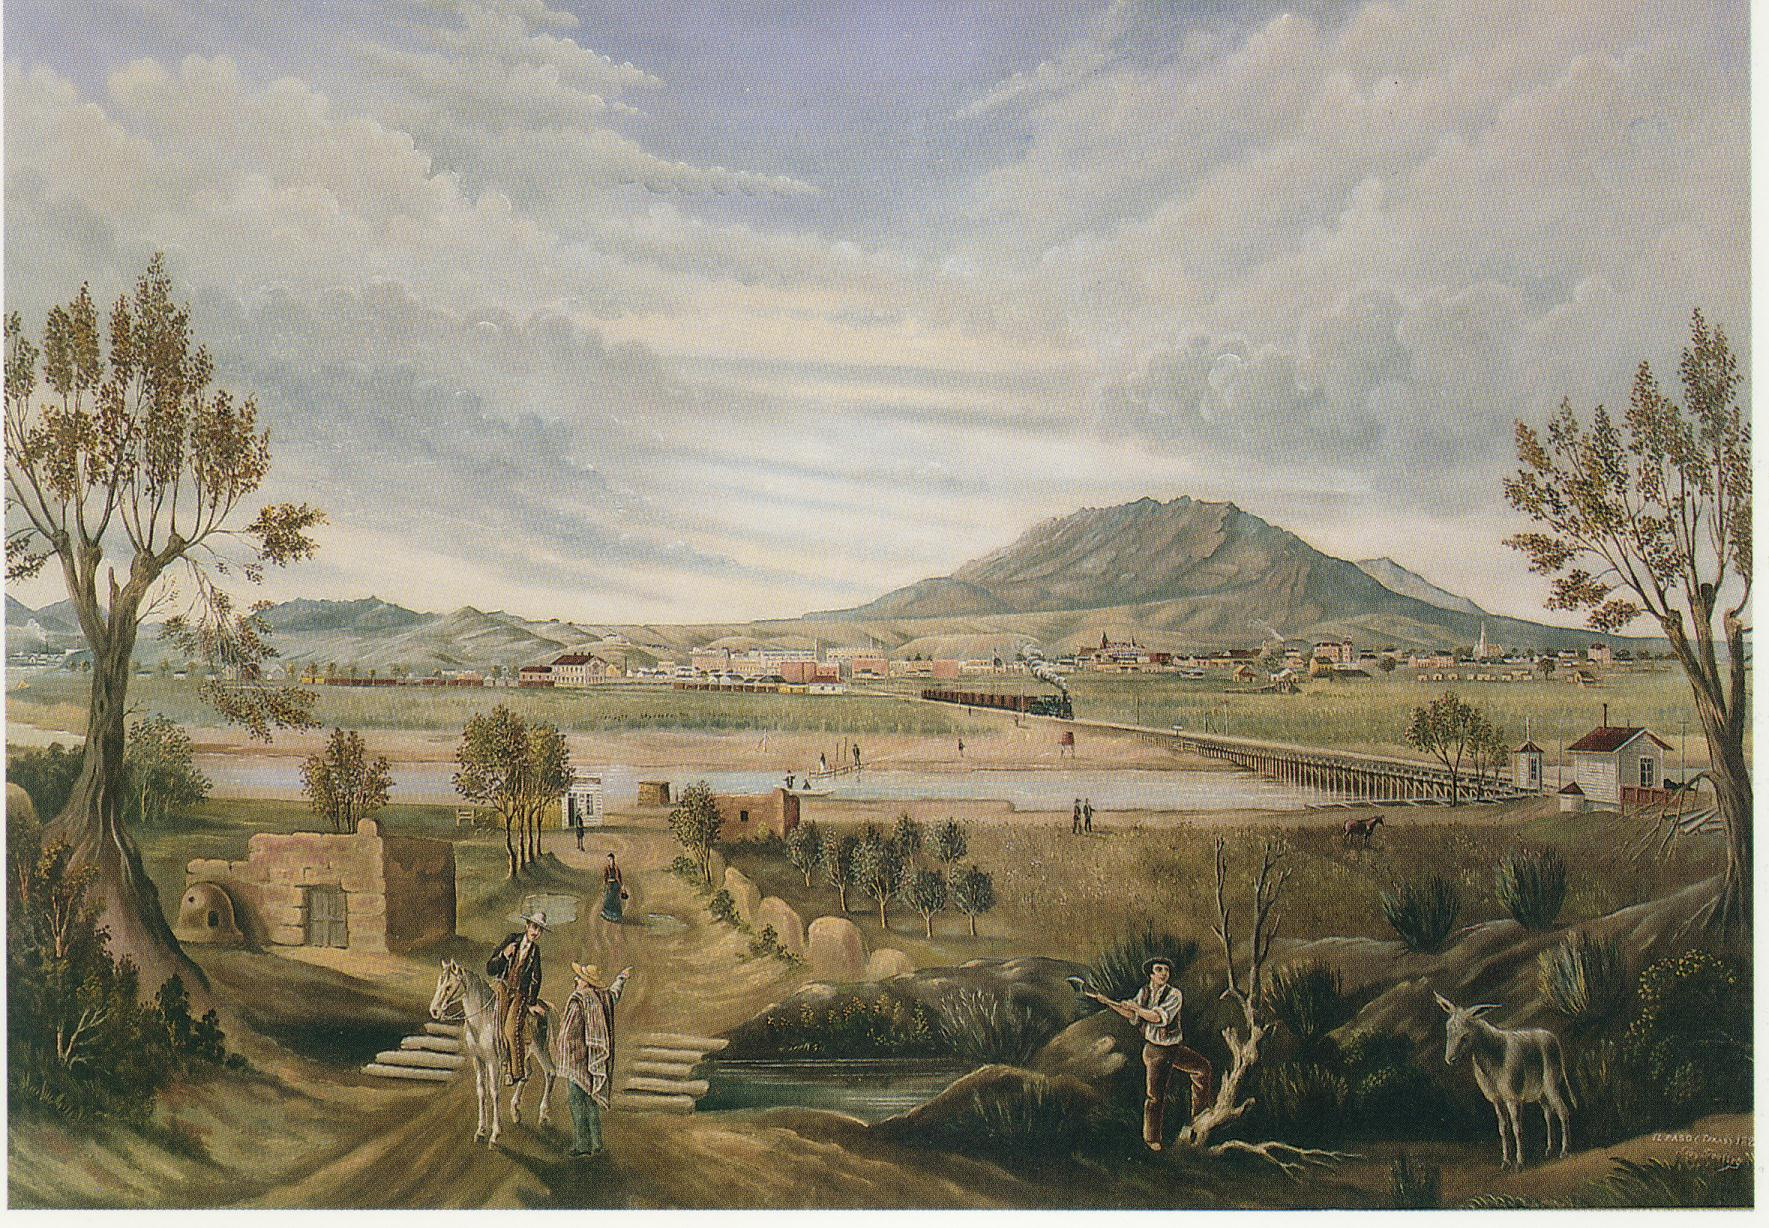 """View of El Paso"", Leon Trousset, 1885"